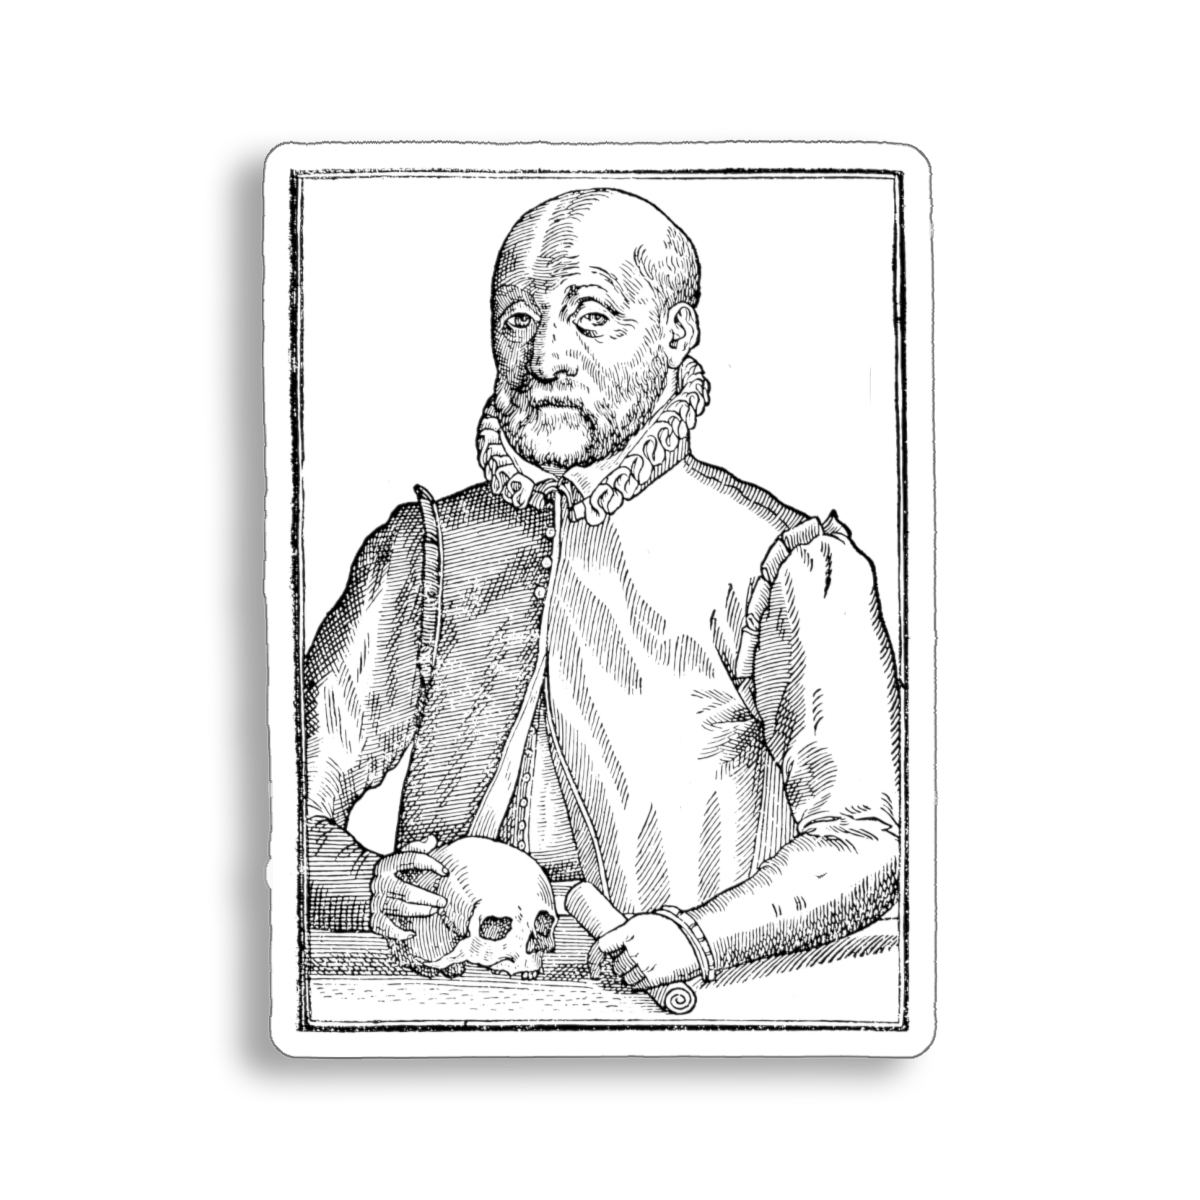 Ioannes Wierus a.k.a. Johann Weyer 16th century demonologist sticker